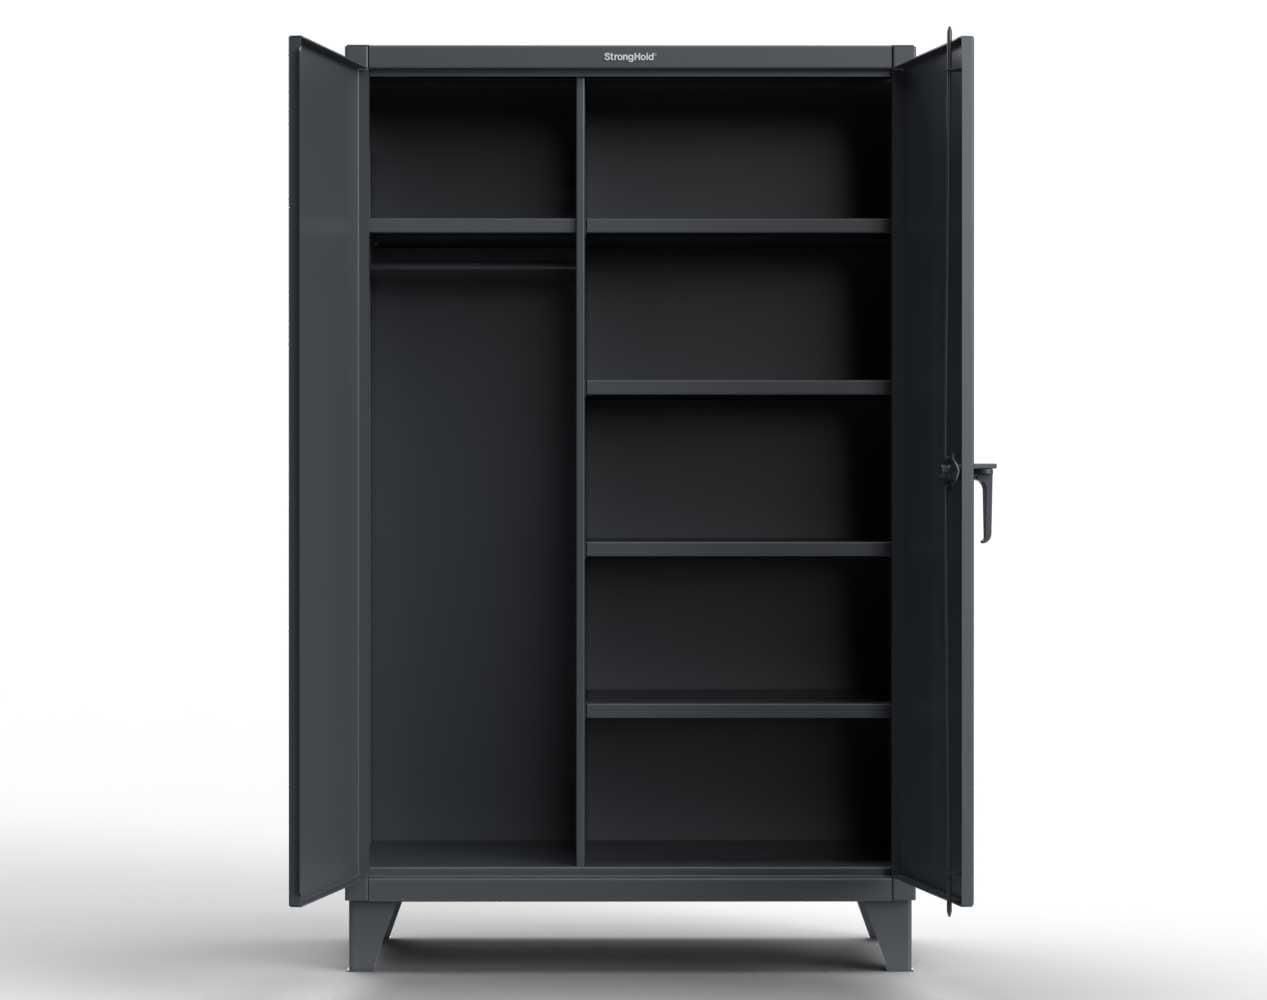 Extreme Duty 12 GA Uniform Cabinet with 5 Shelves – 36 In. W x 24 In. D x 78 In. H